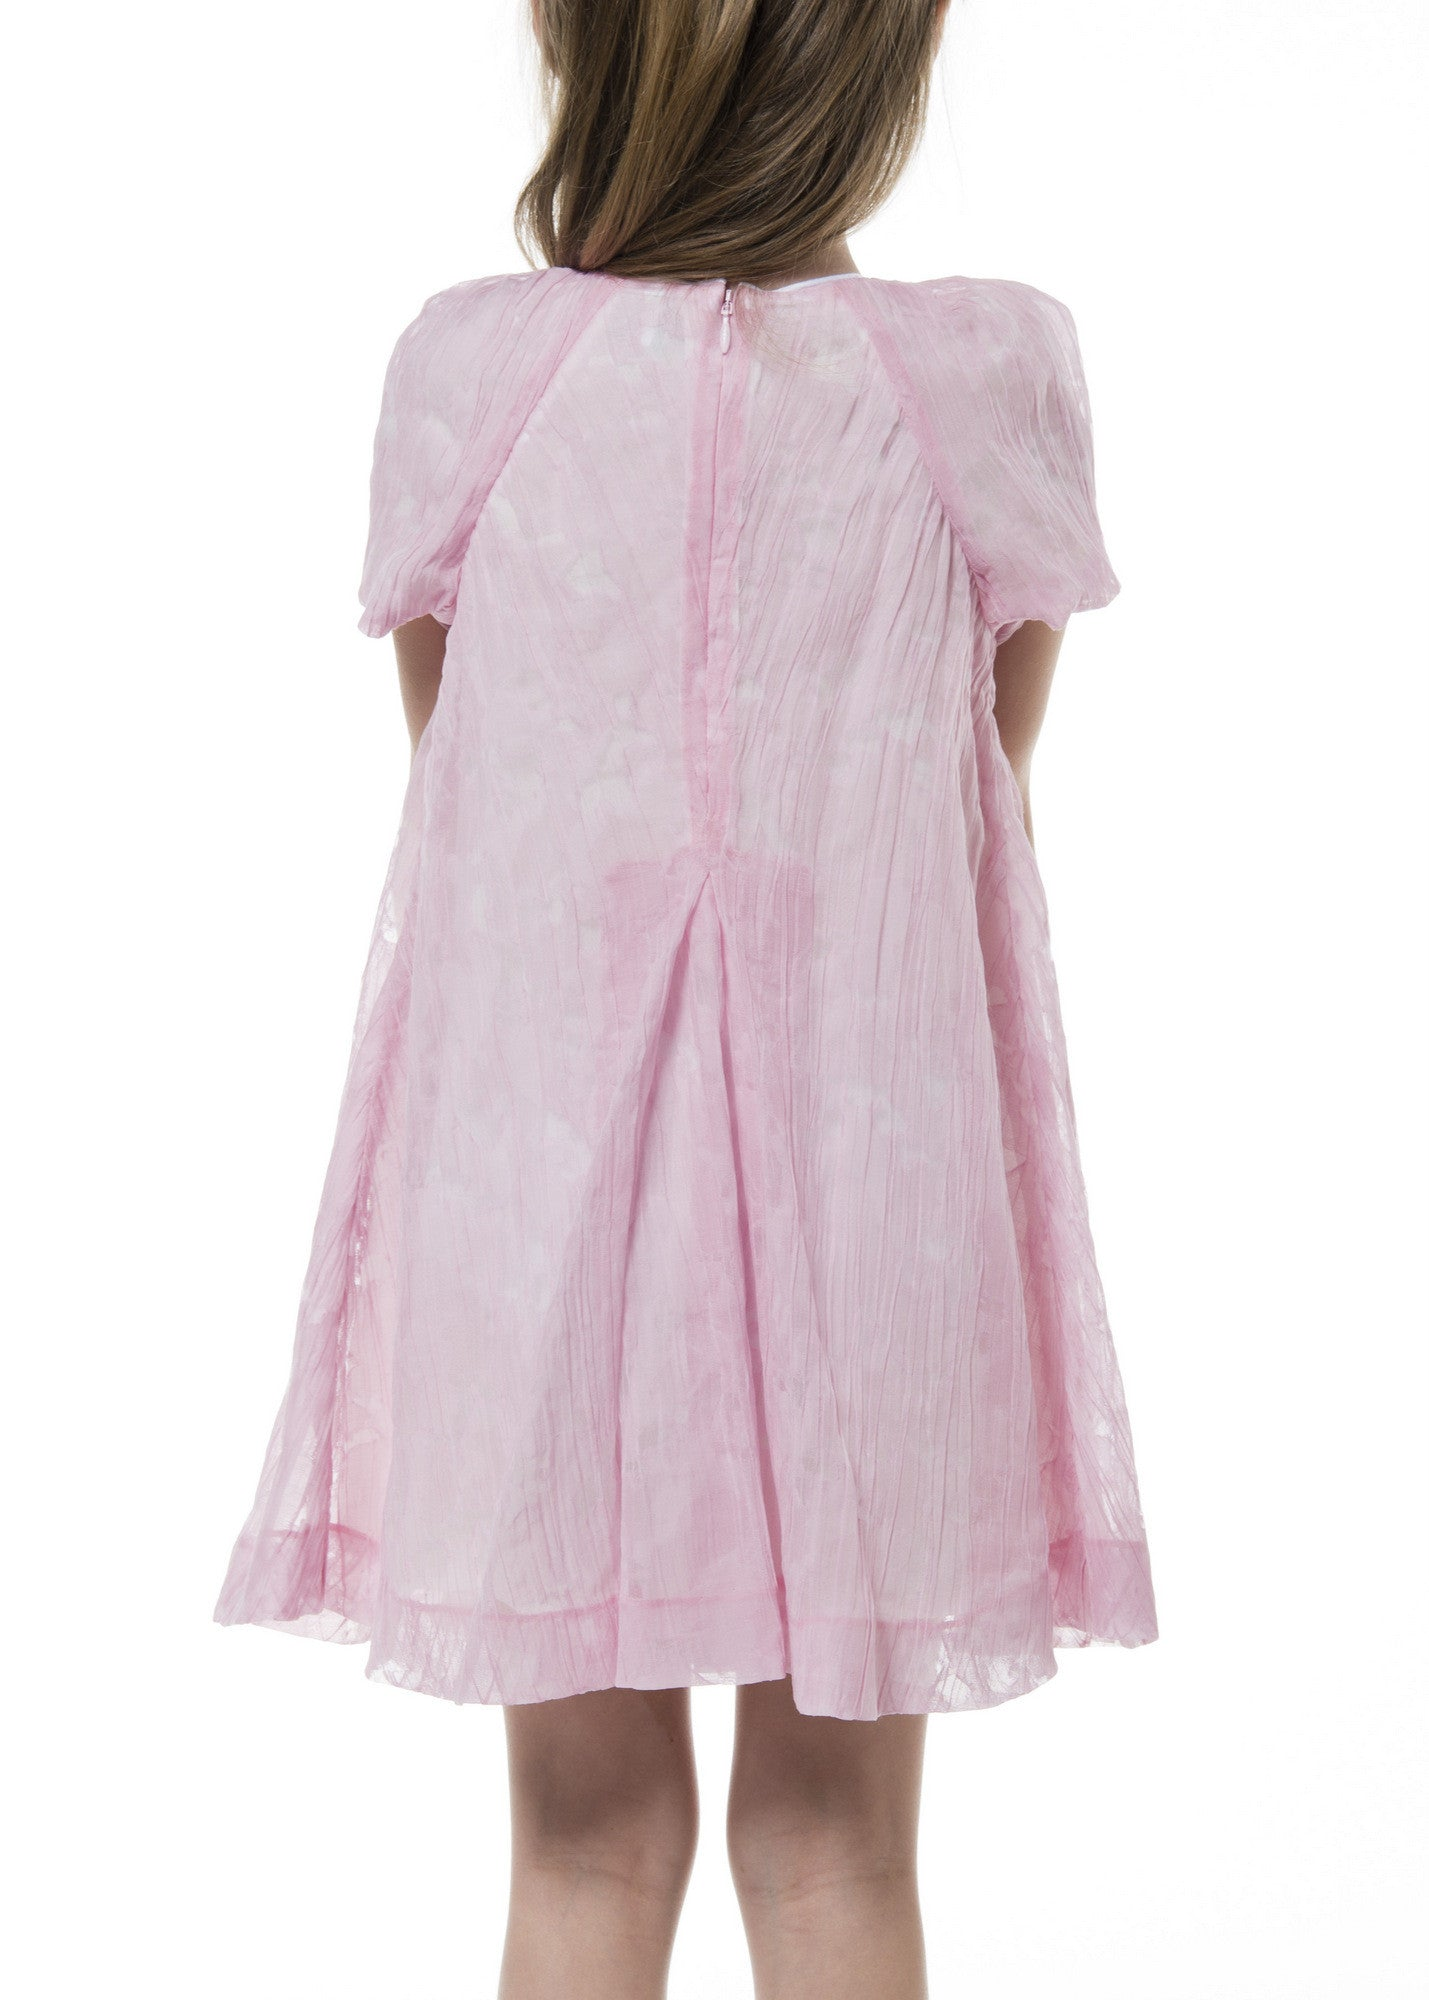 Girl Dress - Light Pink